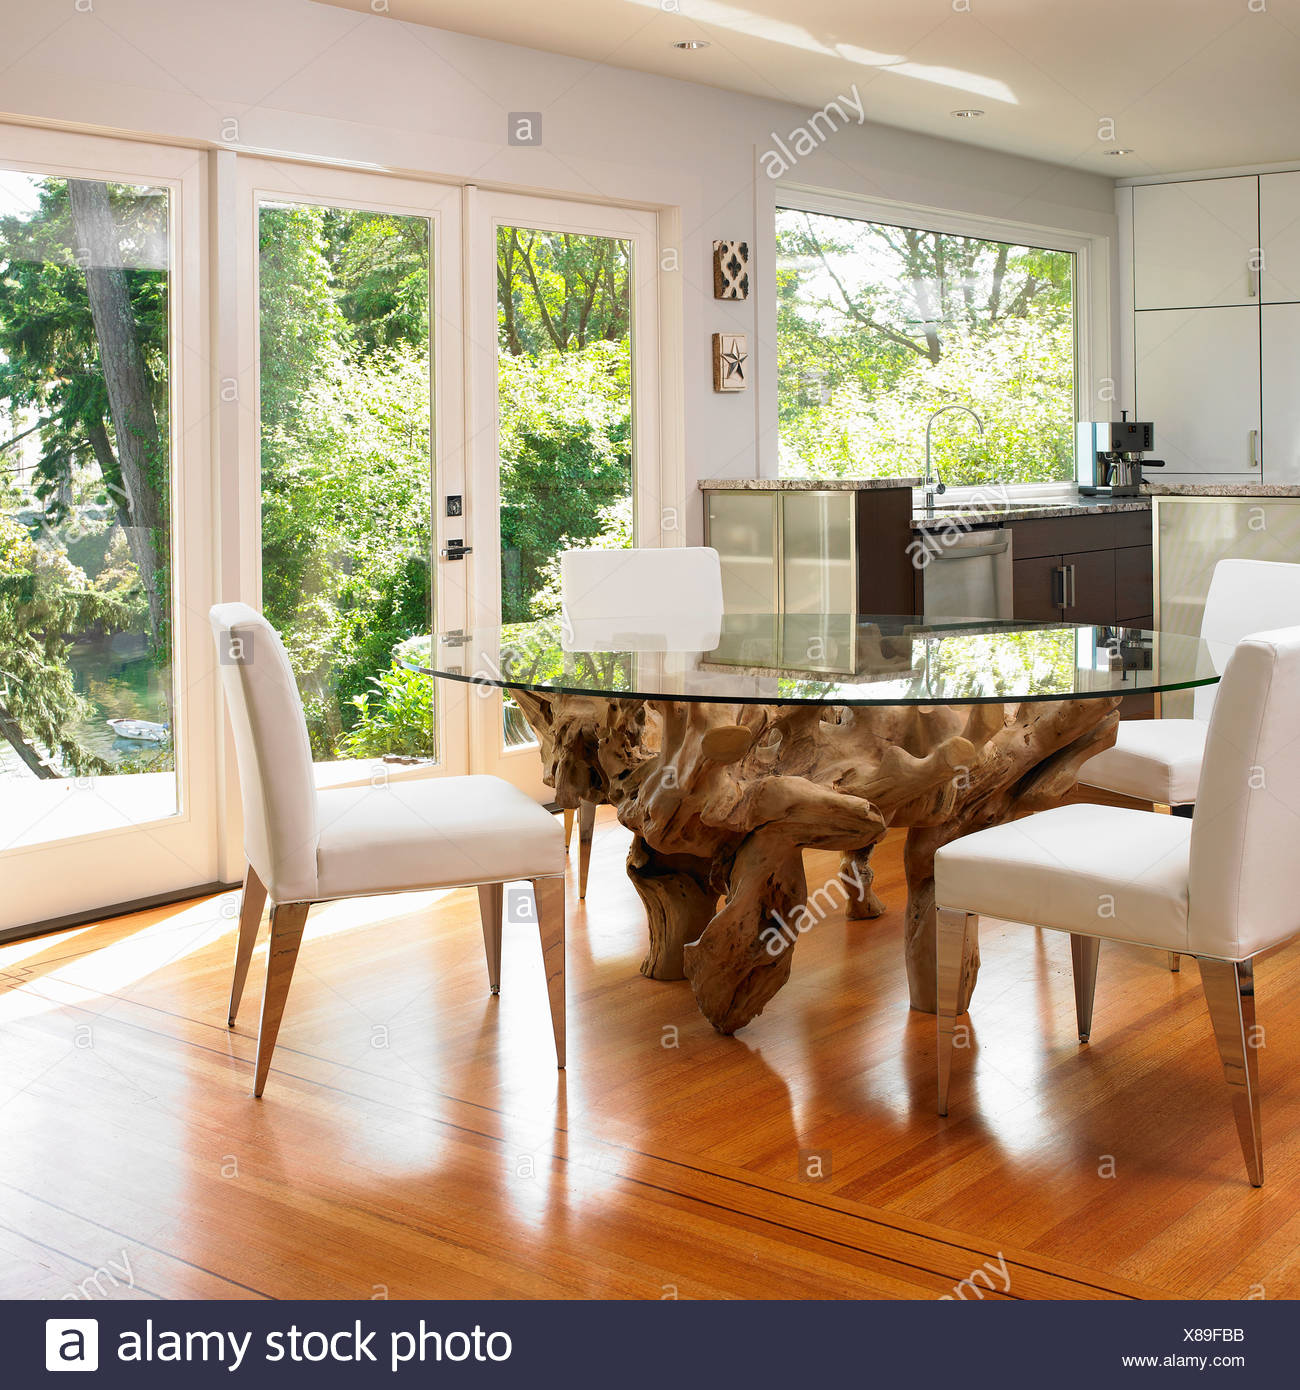 Glass-Topped Dining Table With Large Tree Root Base; Victoria Vancouver Island British Columbia Canada Stock Photo